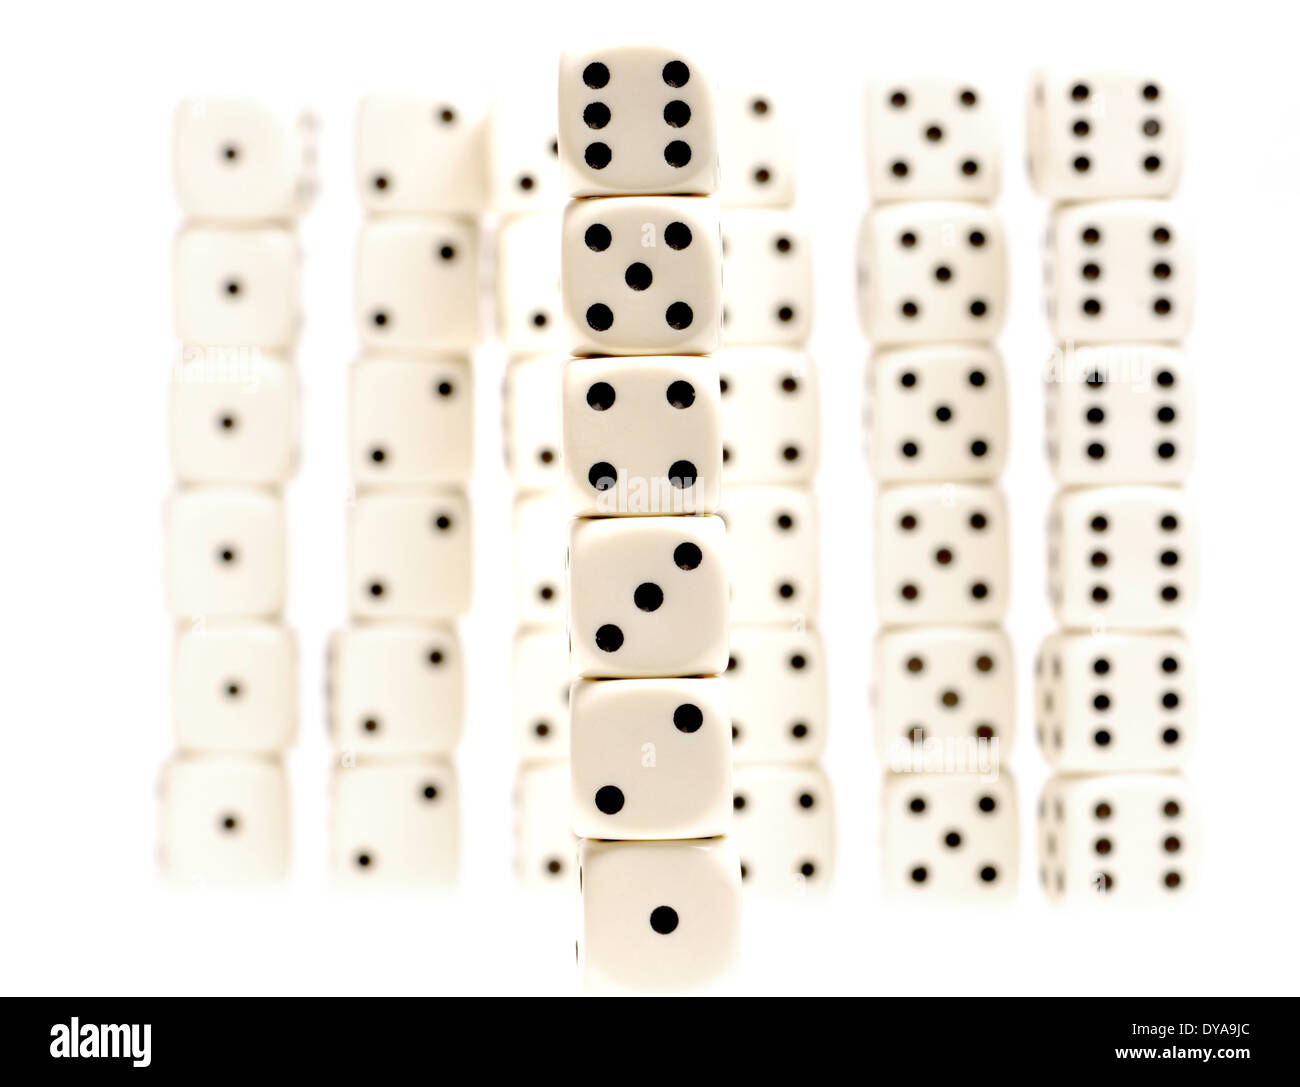 Ordered piles of dice - Stock Image